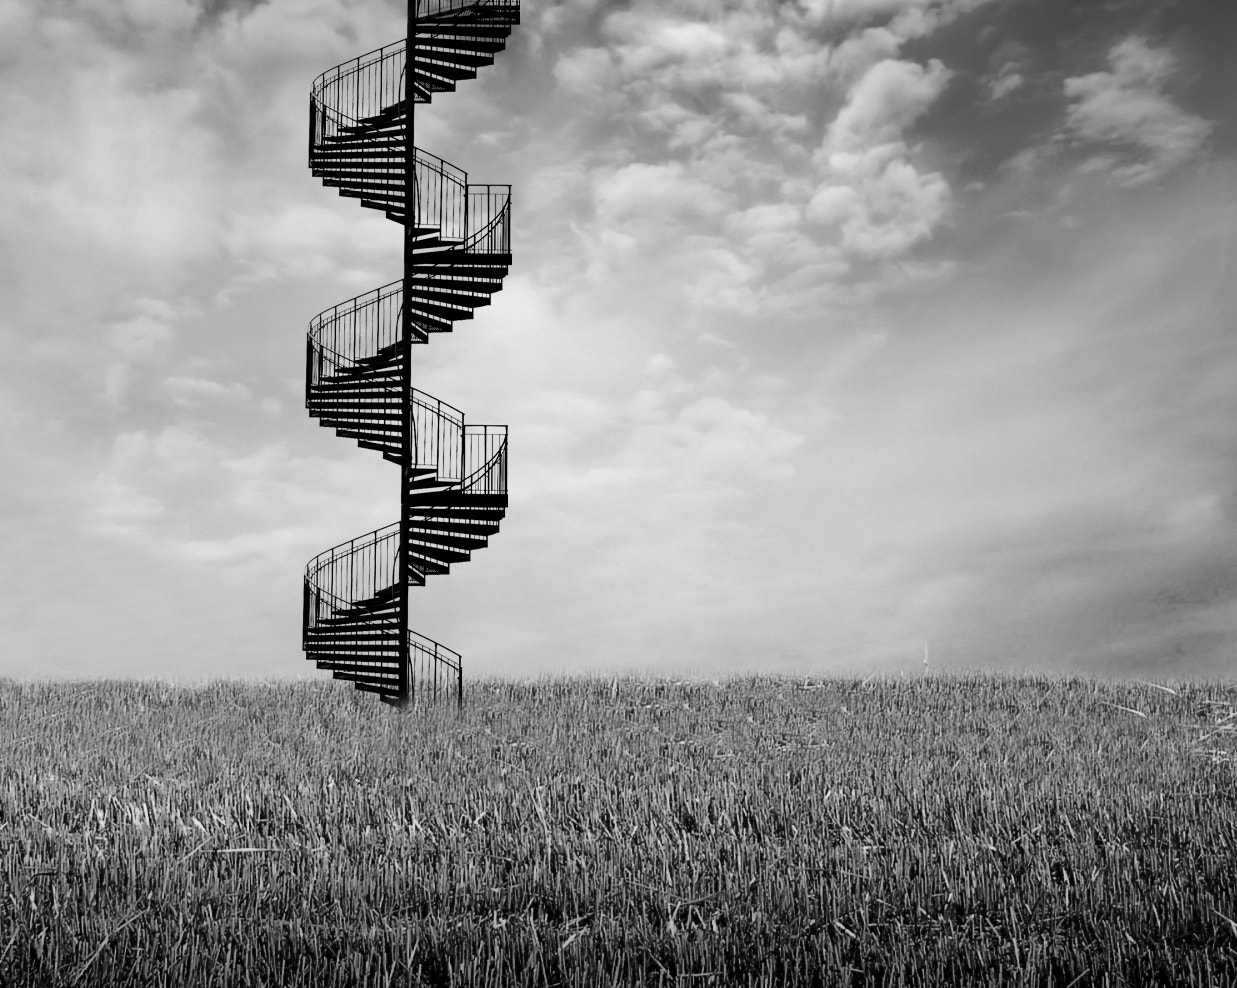 Photograph Stairway to heaven by Mikael Sundberg on 500px